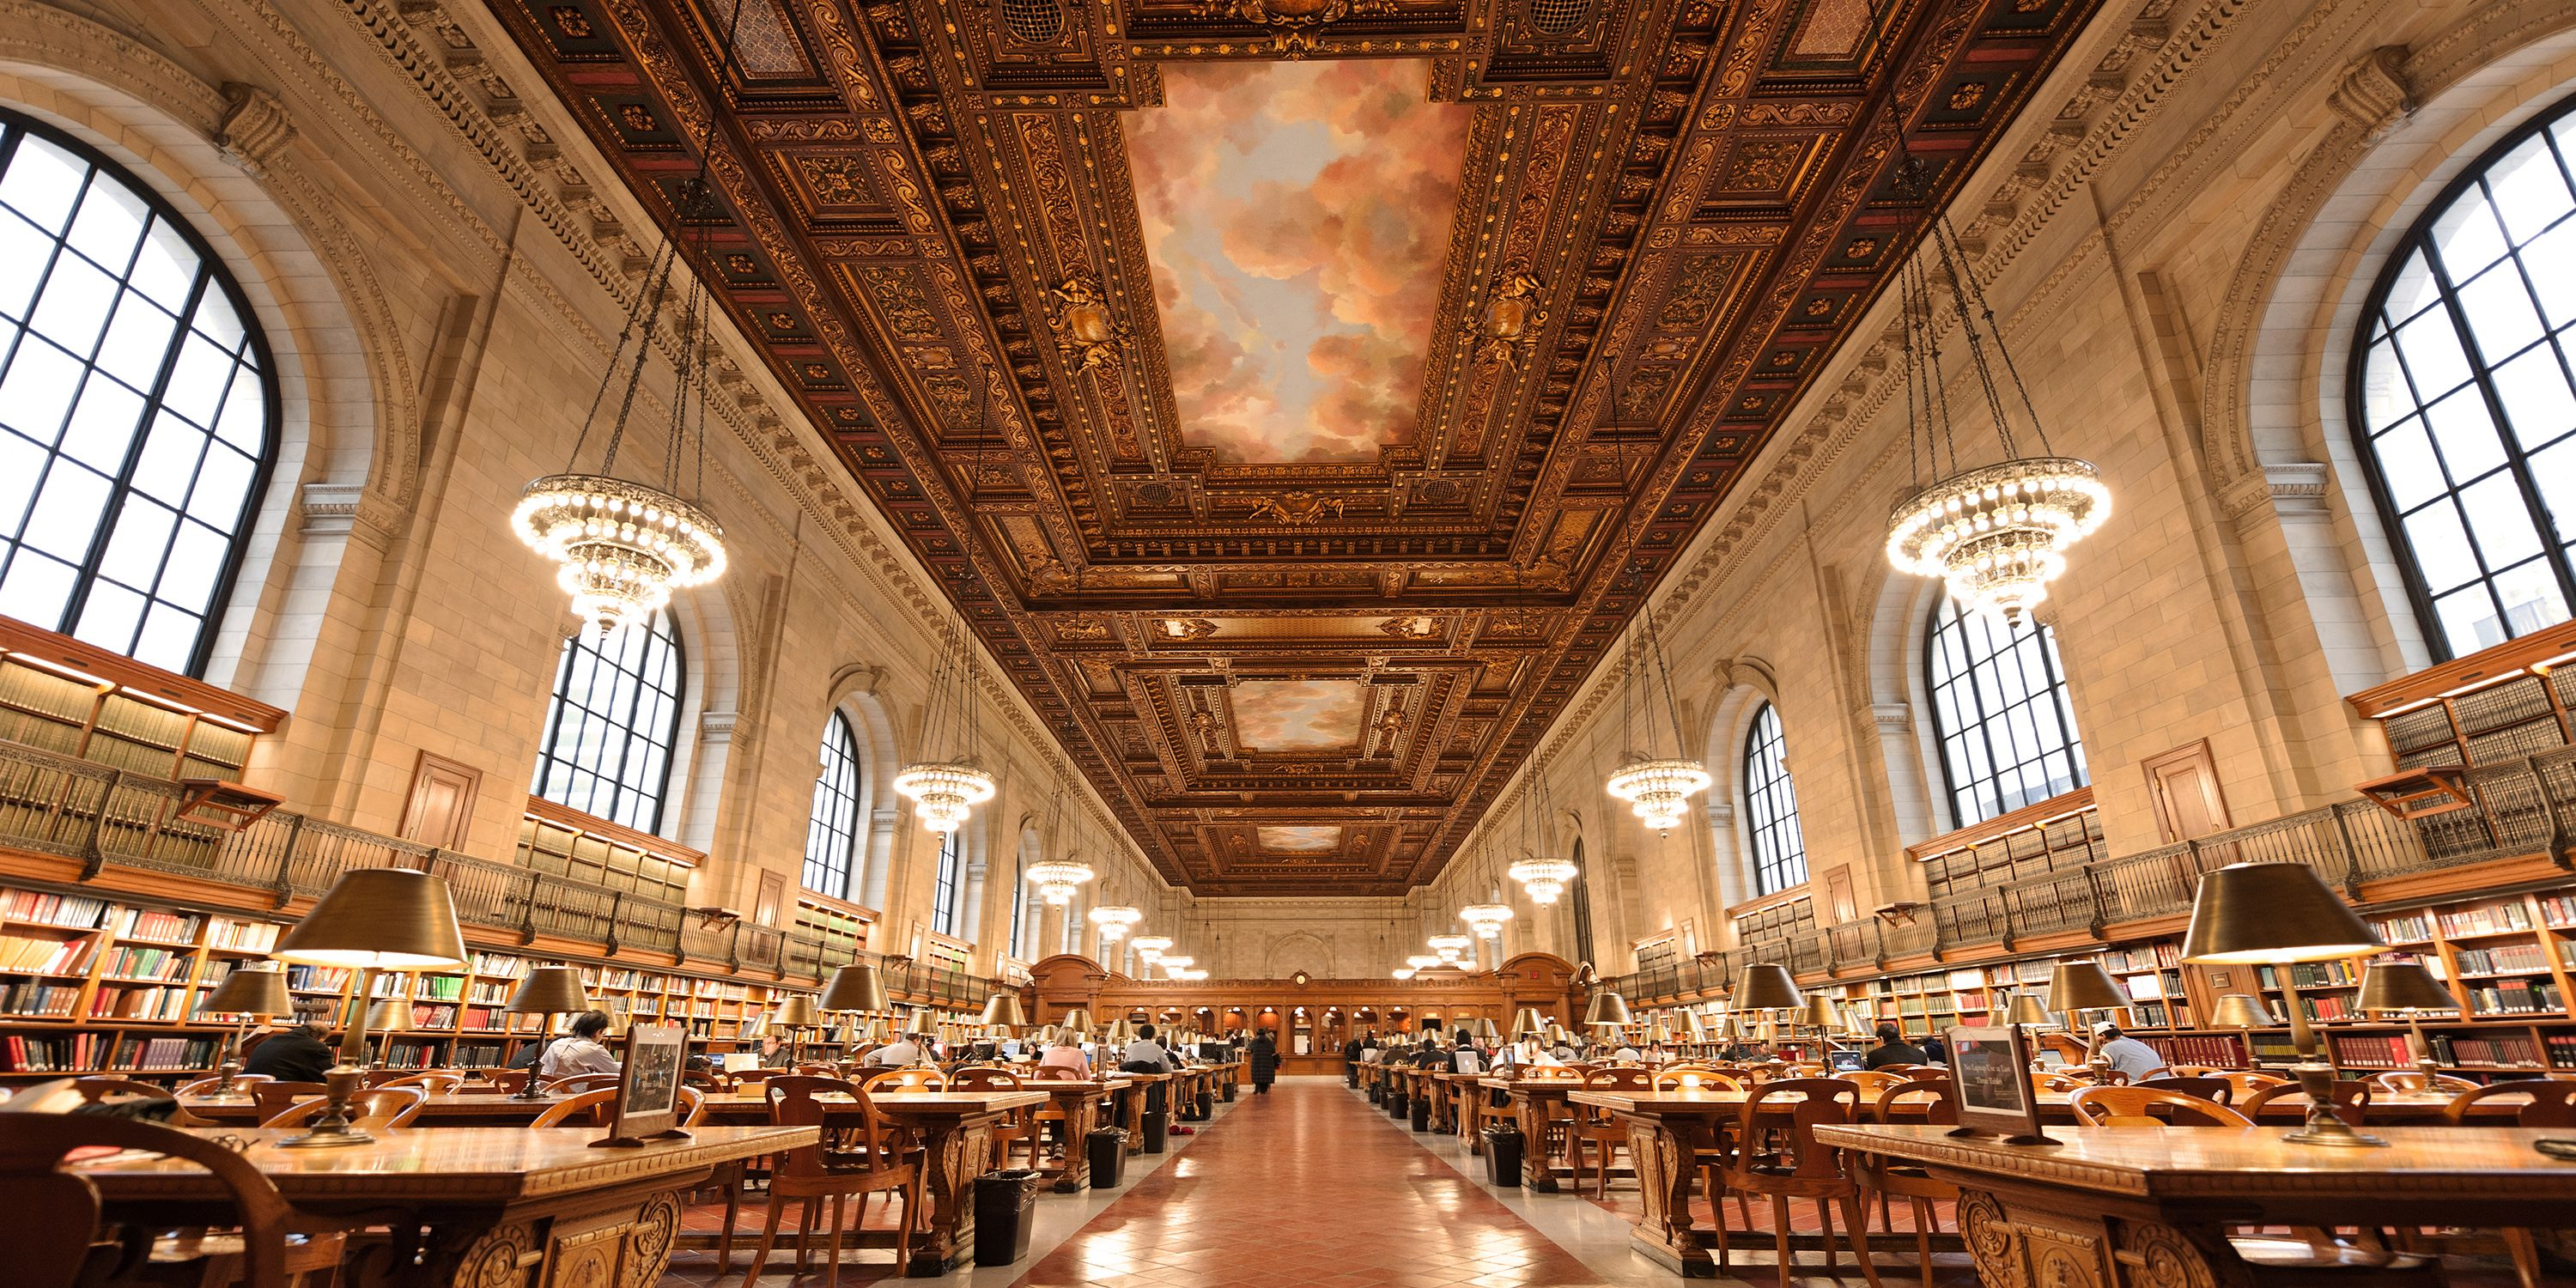 "<p>Located in the heart of the New York Public Library, this is the perfect place for studying, reading or just simply staring at the beautiful ceiling. </p><p><strong>Location:</strong> 5th Ave at 42nd St New York, NY</p><p><strong>Hours: </strong>10am - 6pm daily, <a href=""http://www.nypl.org/locations/schwarzman"" target=""_blank"">nypl.org</a>. </p>"